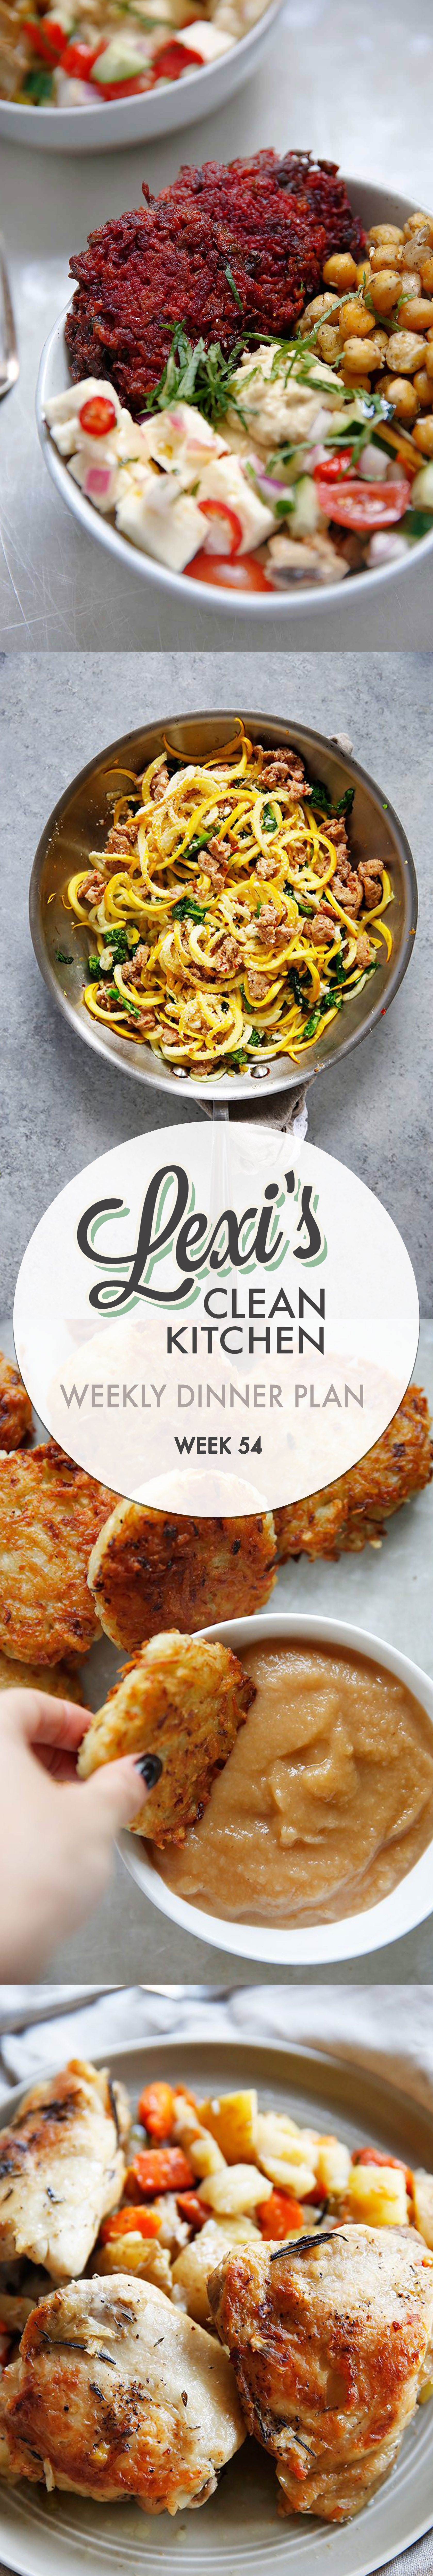 Lexi's Weekly Dinner Plan Week 54 [paleo-friendly] | Lexi's Clean Kitchen